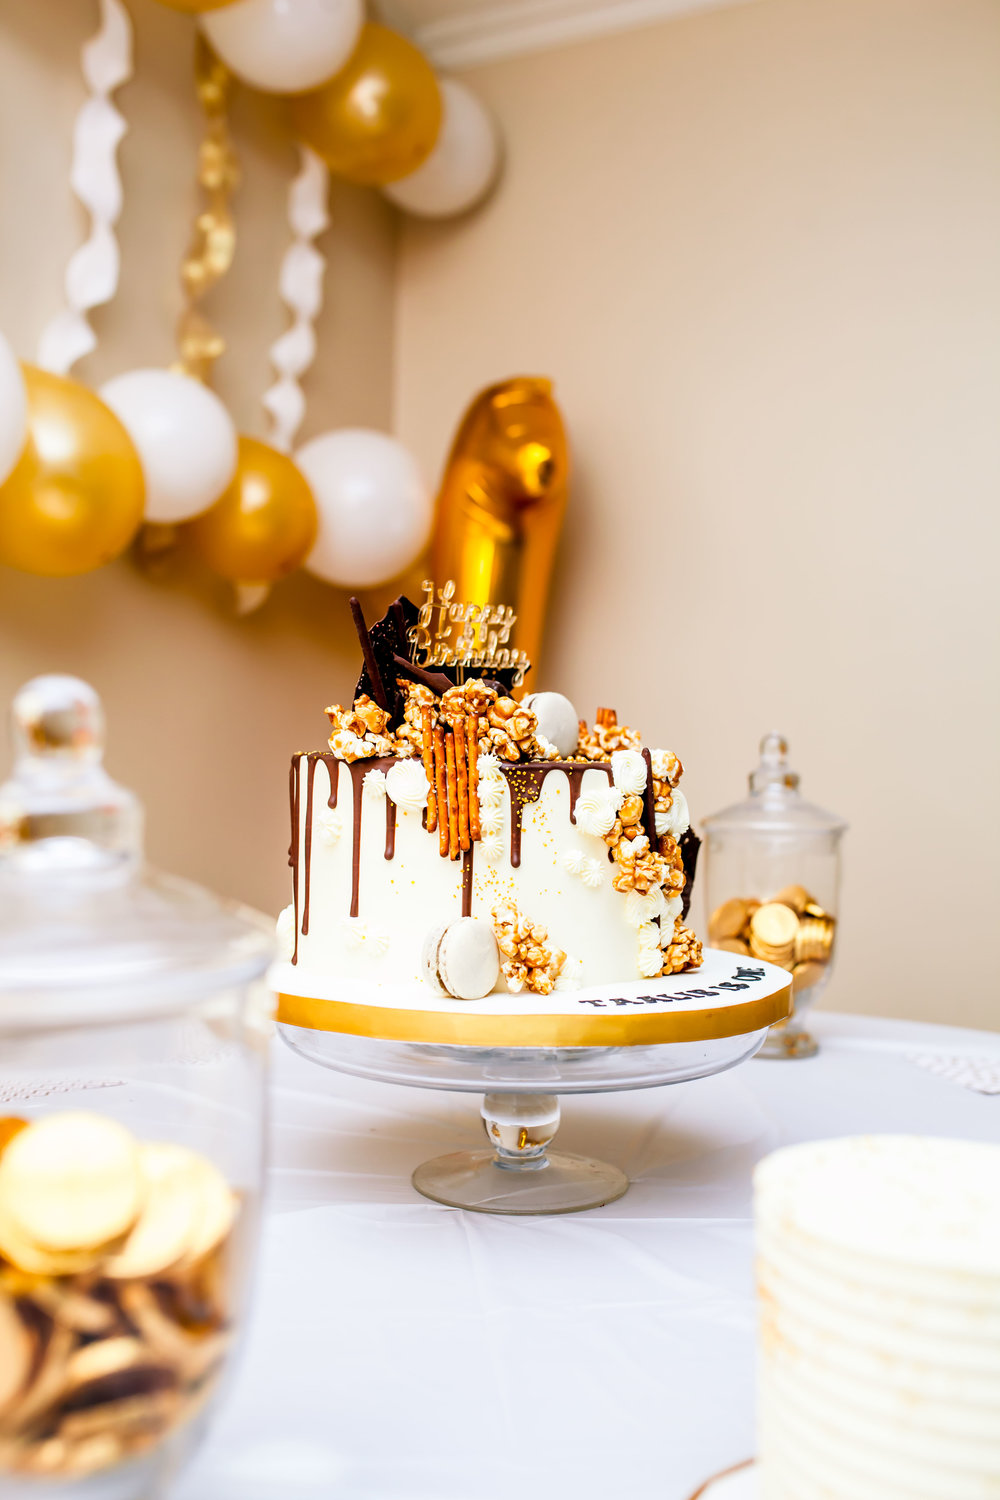 Birthday Photographer Toronto Party Event Photographer Muslim DIY decor cute 2017 Eritrean Somali Ontario Le dolci Ideas Karimah Gheddai Photography cake drip cake cupcakes